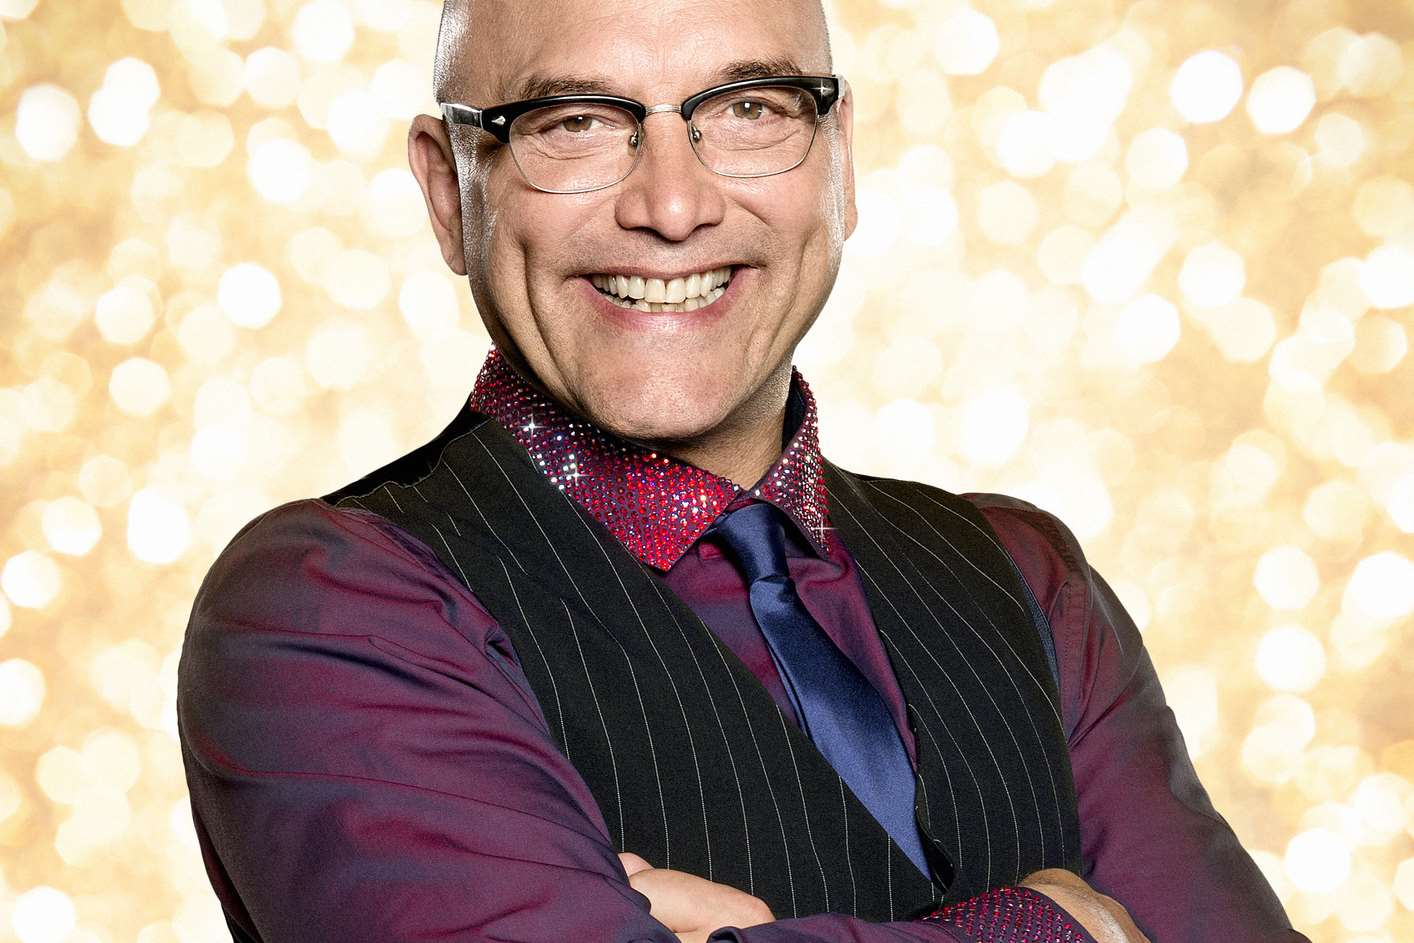 Whitstable-based chef Gregg Wallace is appearing on Strictly Come Dancing. Picture: BBC/RayBurmiston